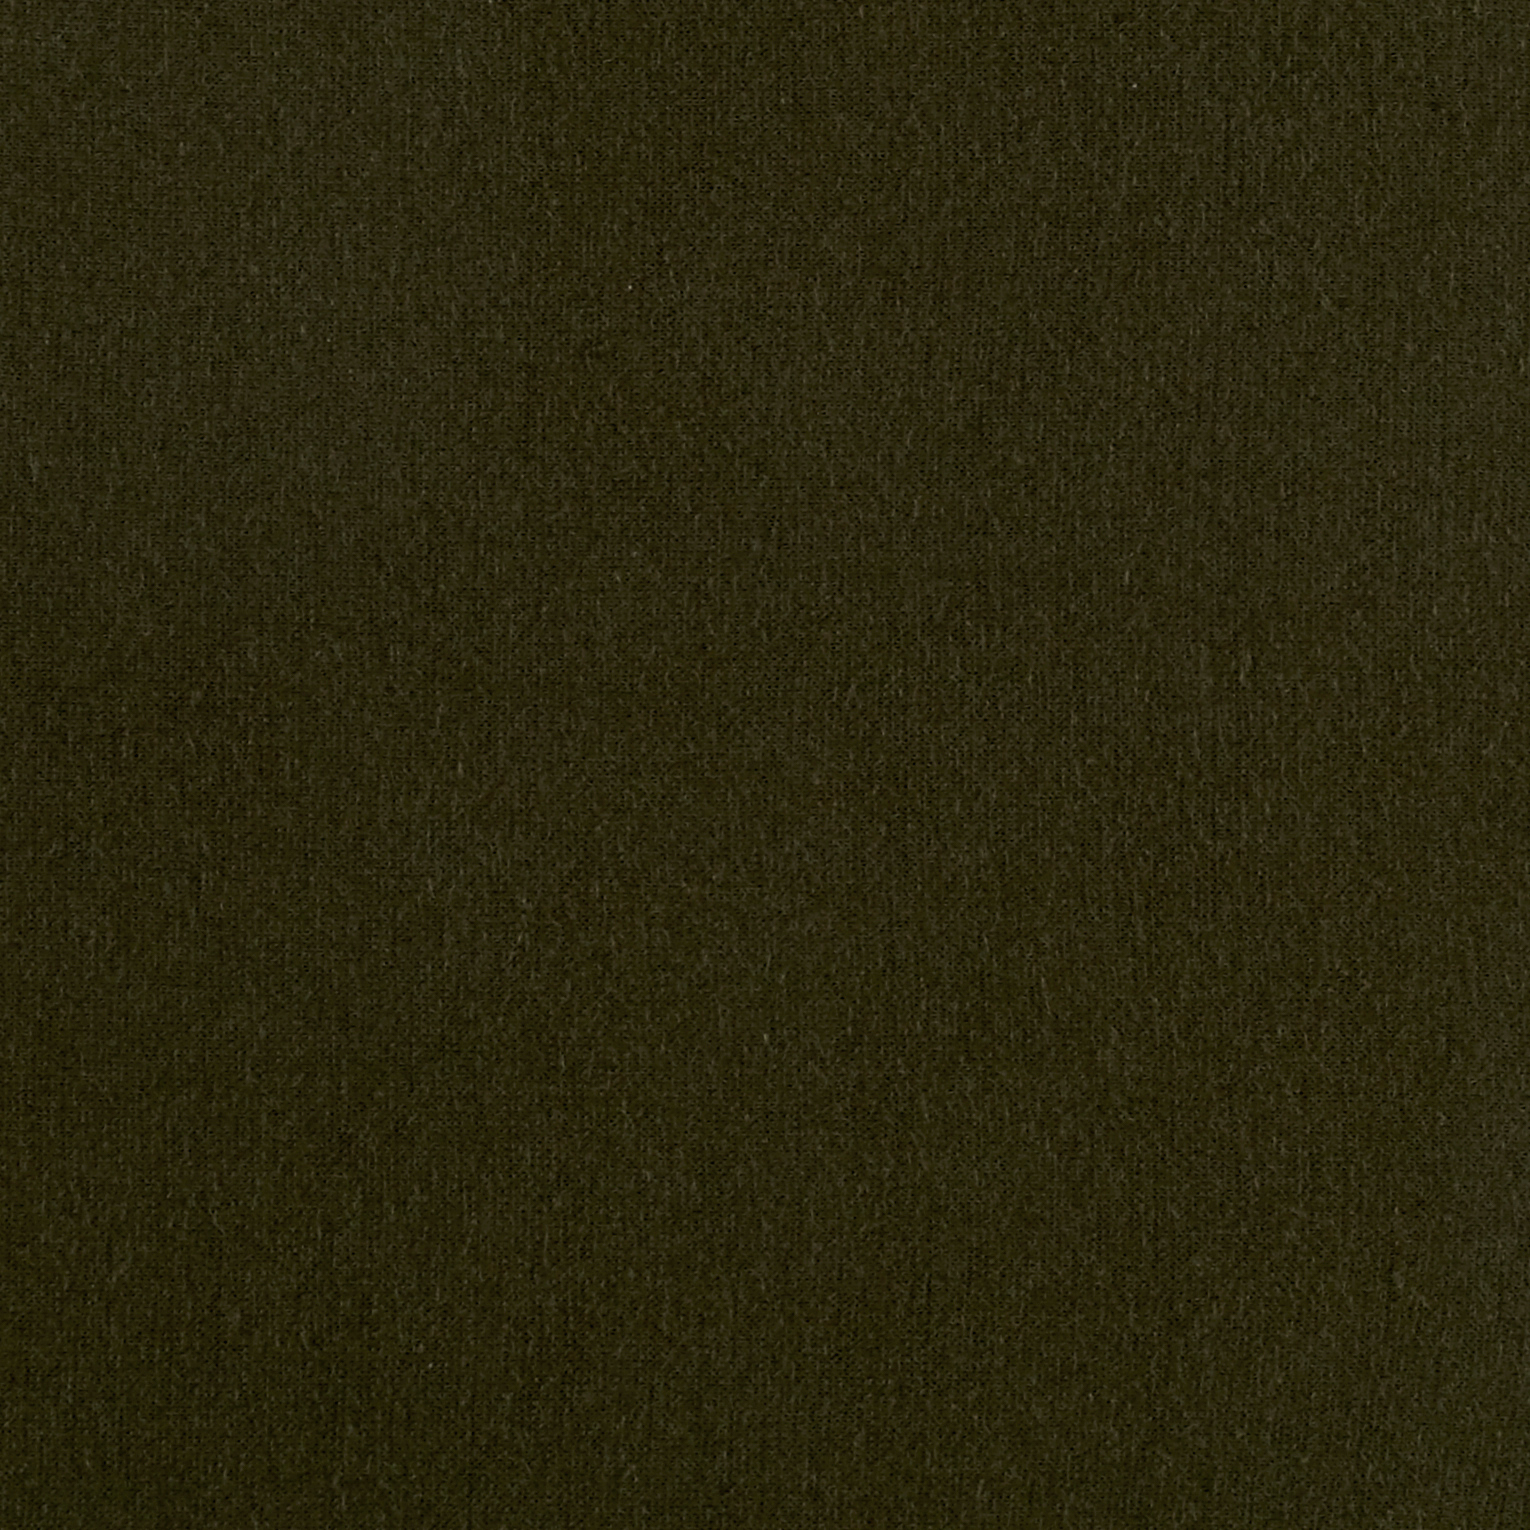 Jersey Knit Solid Military Fabric by Neiman in USA